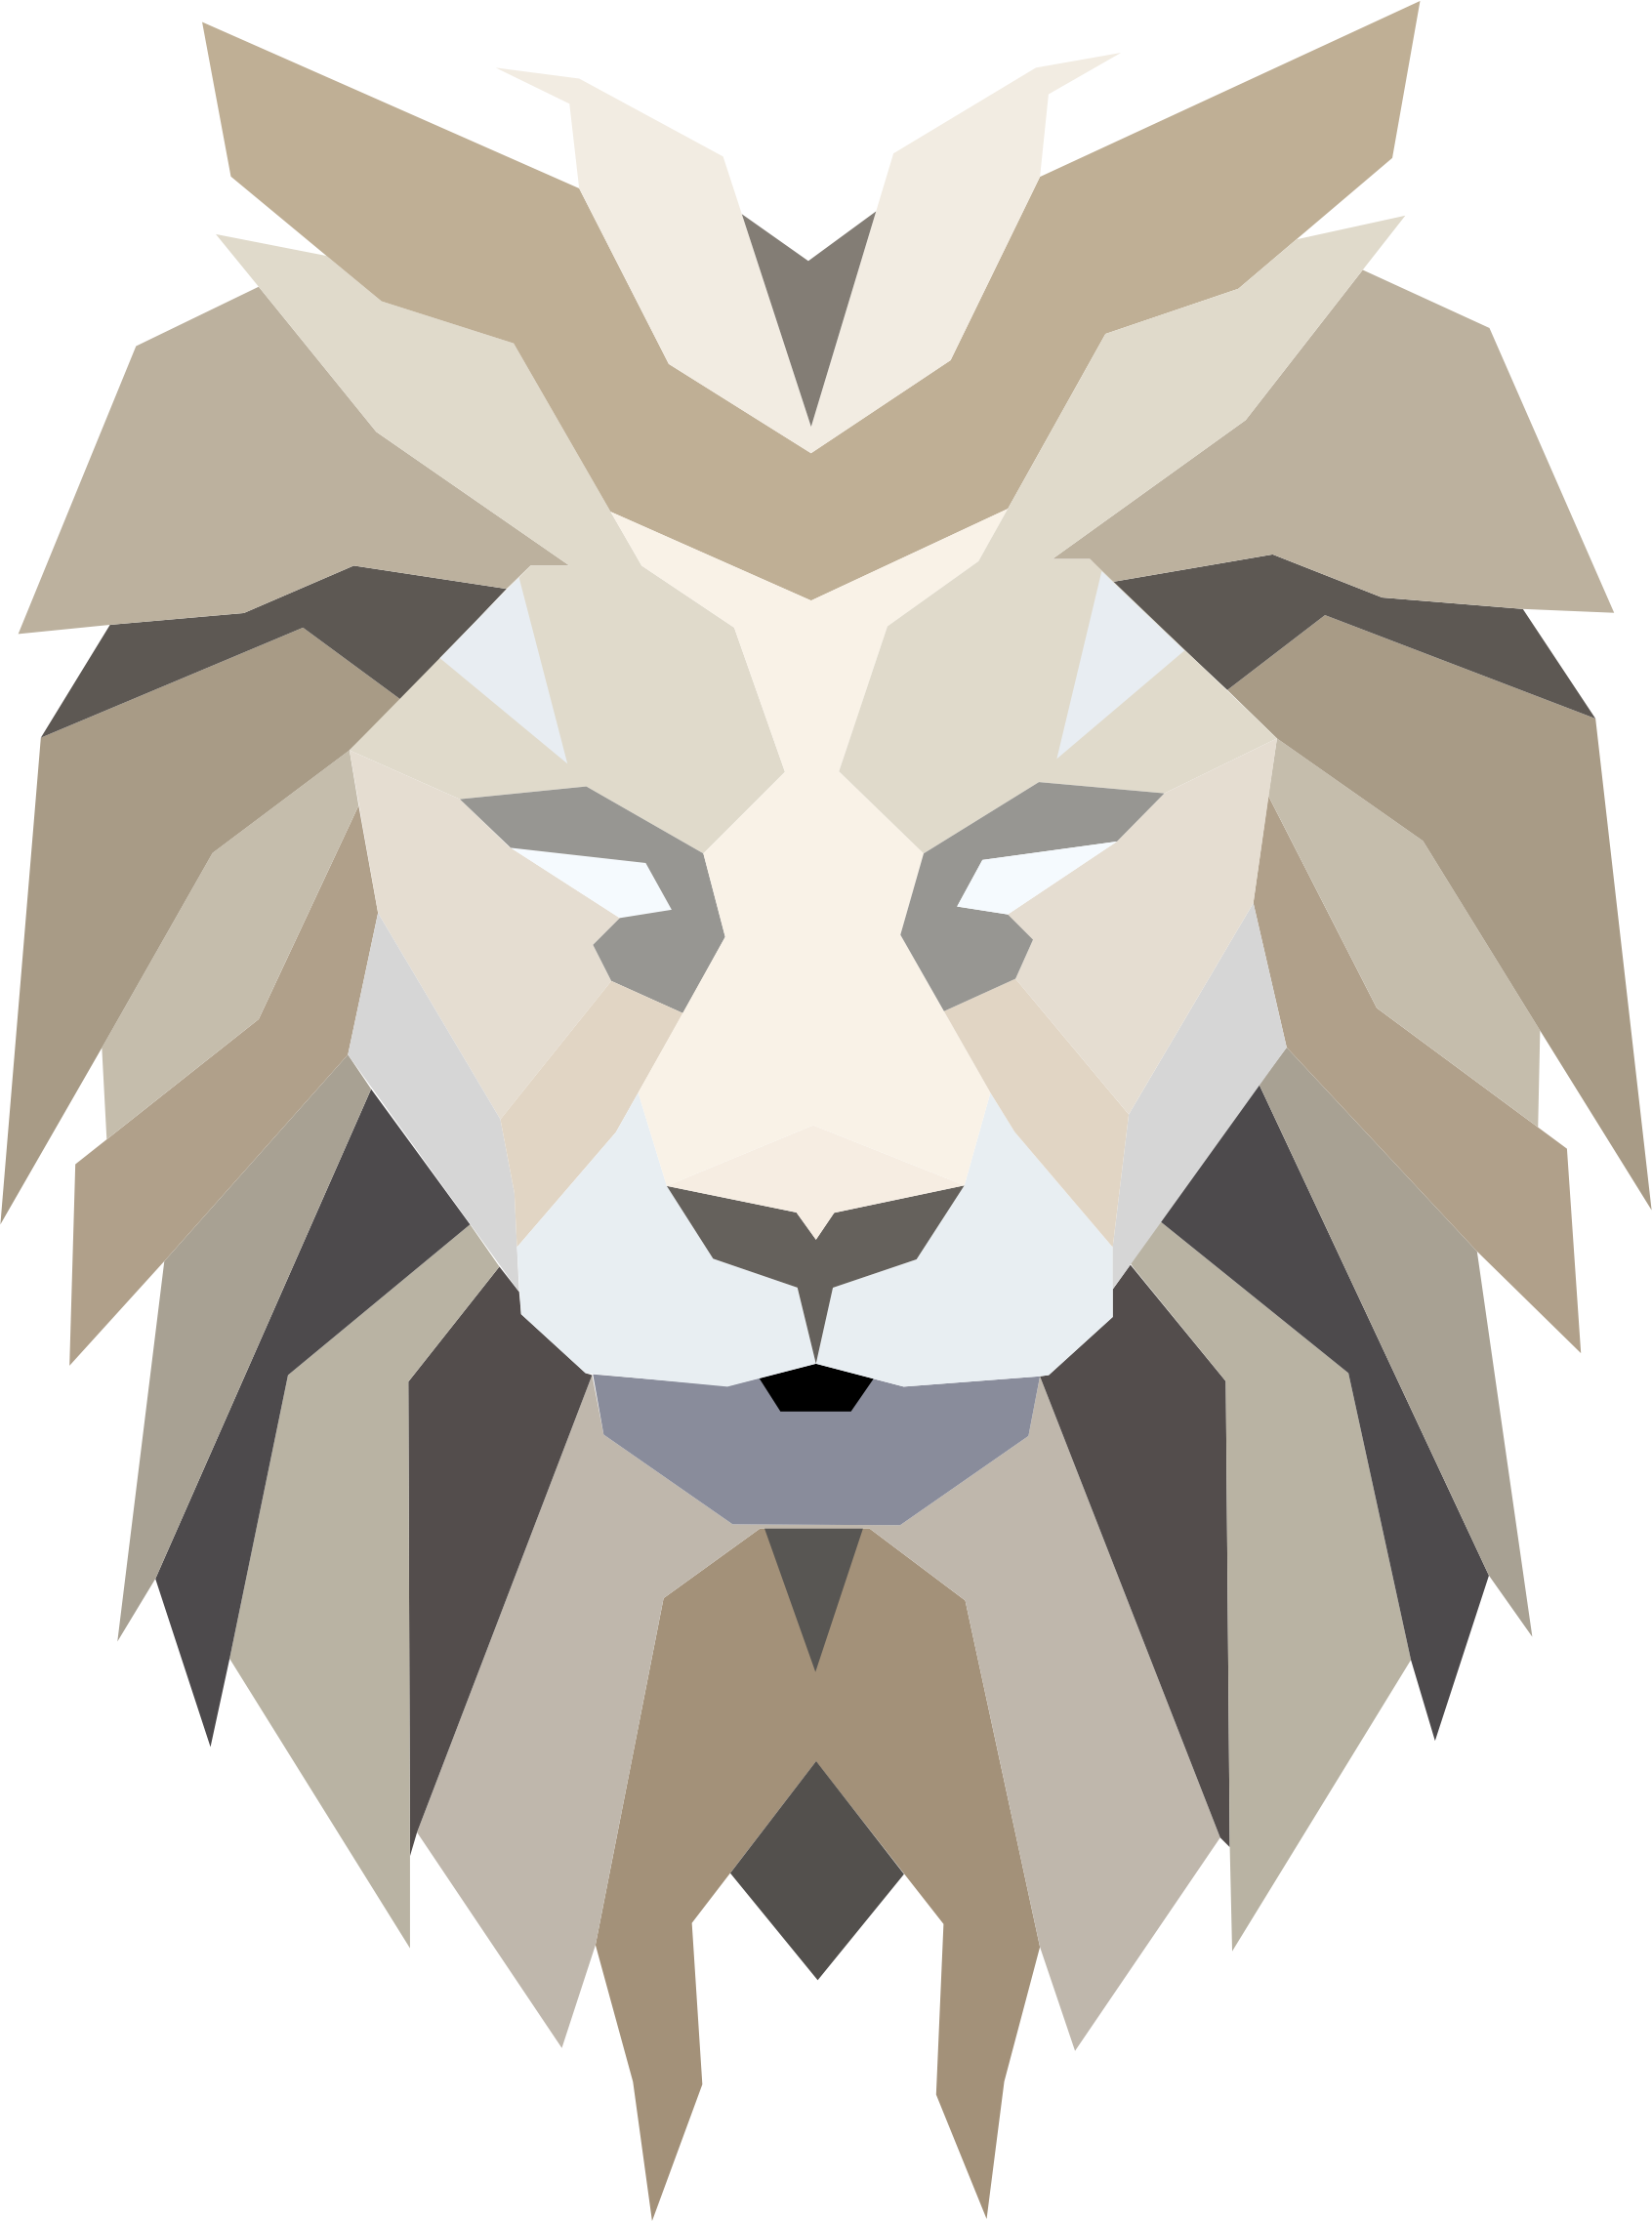 Monarch clipart lion. Lions abstract for free